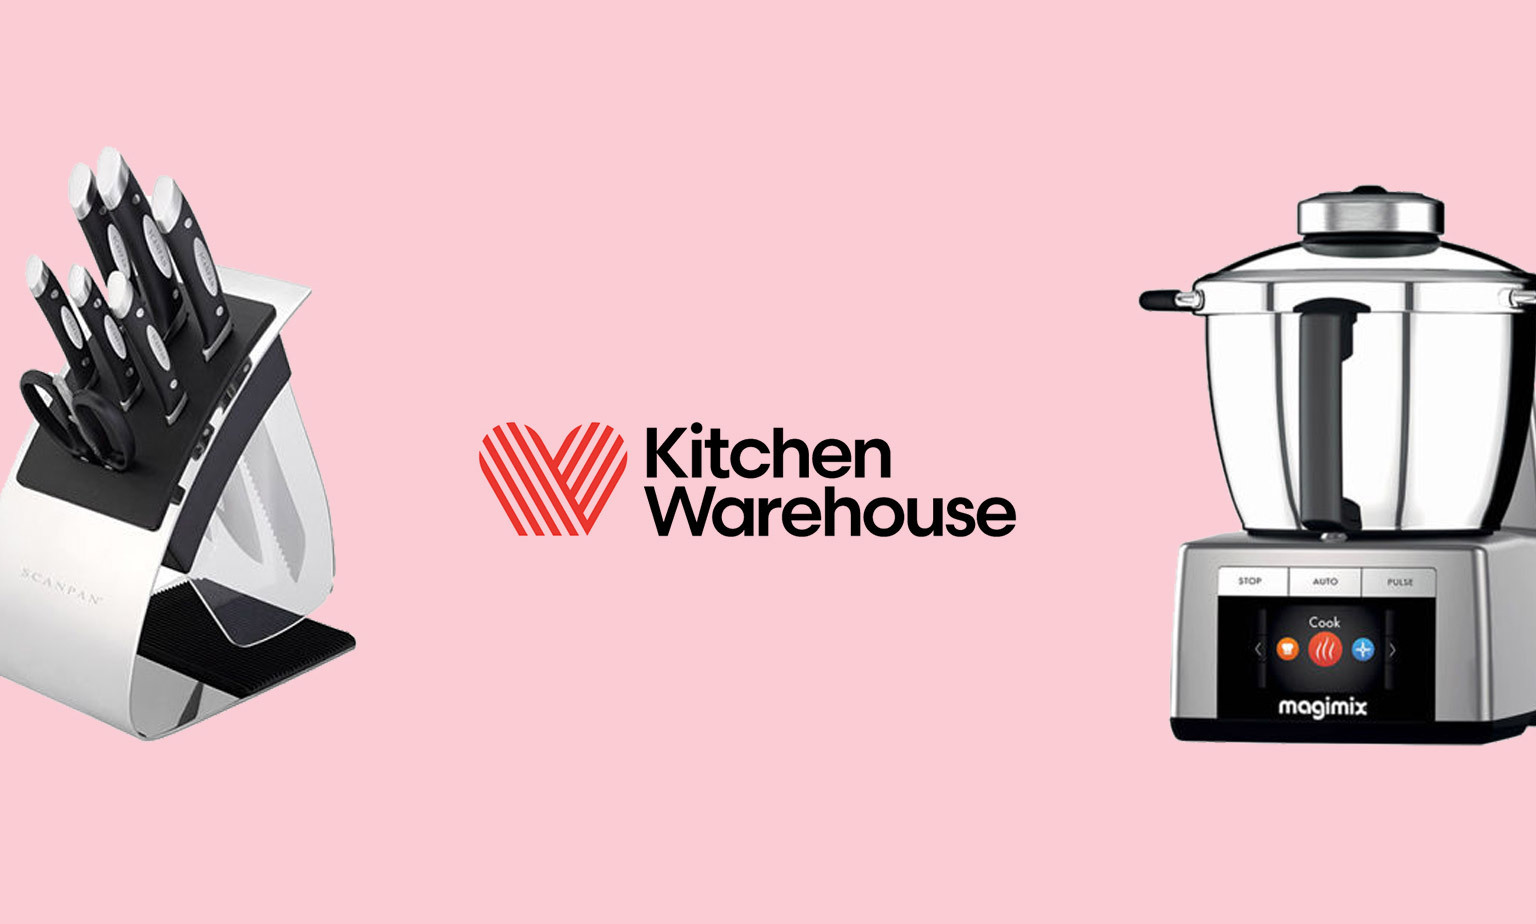 20% off Kitchen Warehouse